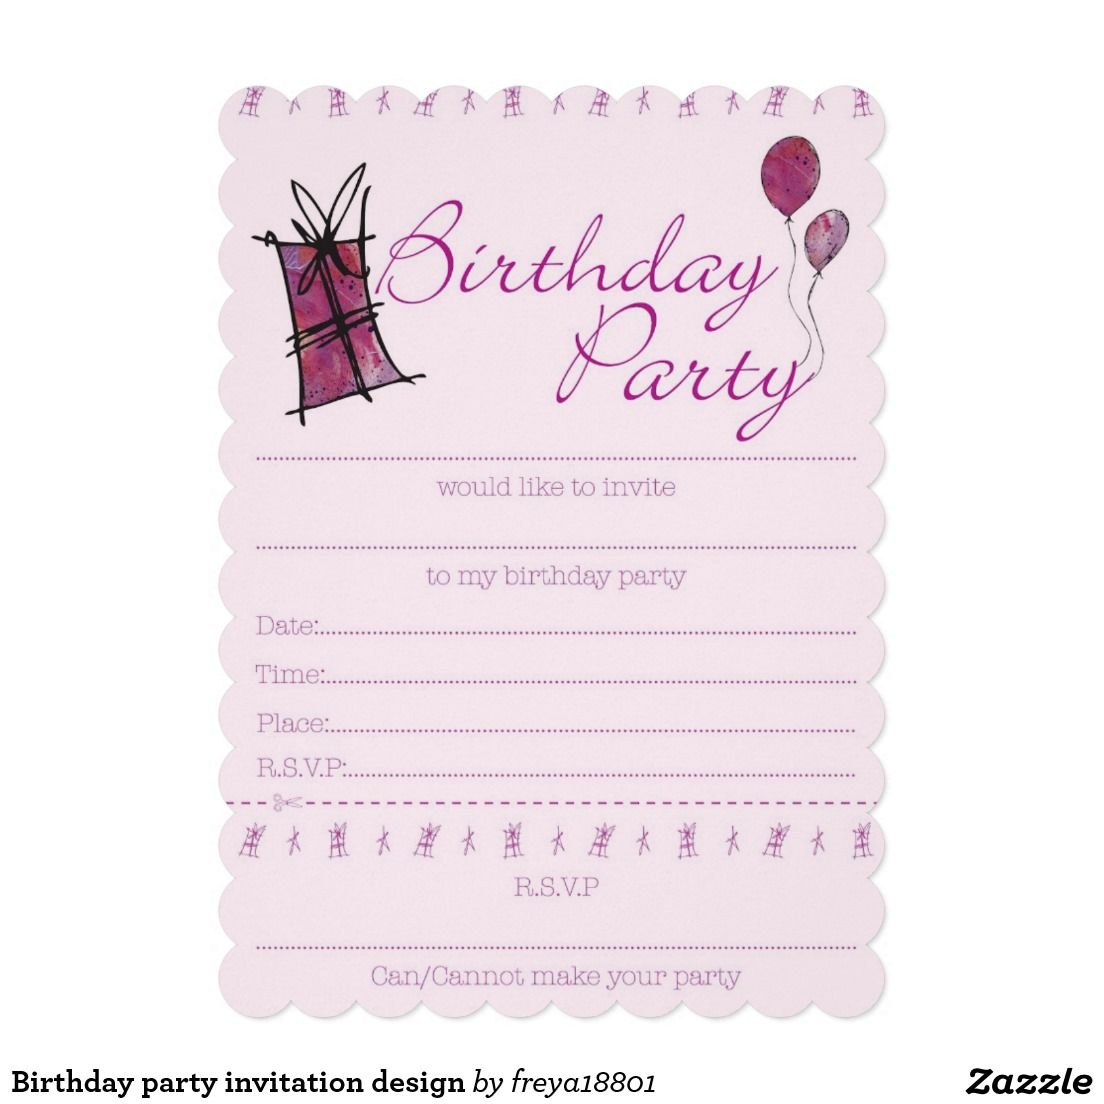 Birthday Party Invitation Design Zazzle Com In 2021 Birthday Party Invitations Free 13th Birthday Invitations Birthday Party Invitations Printable